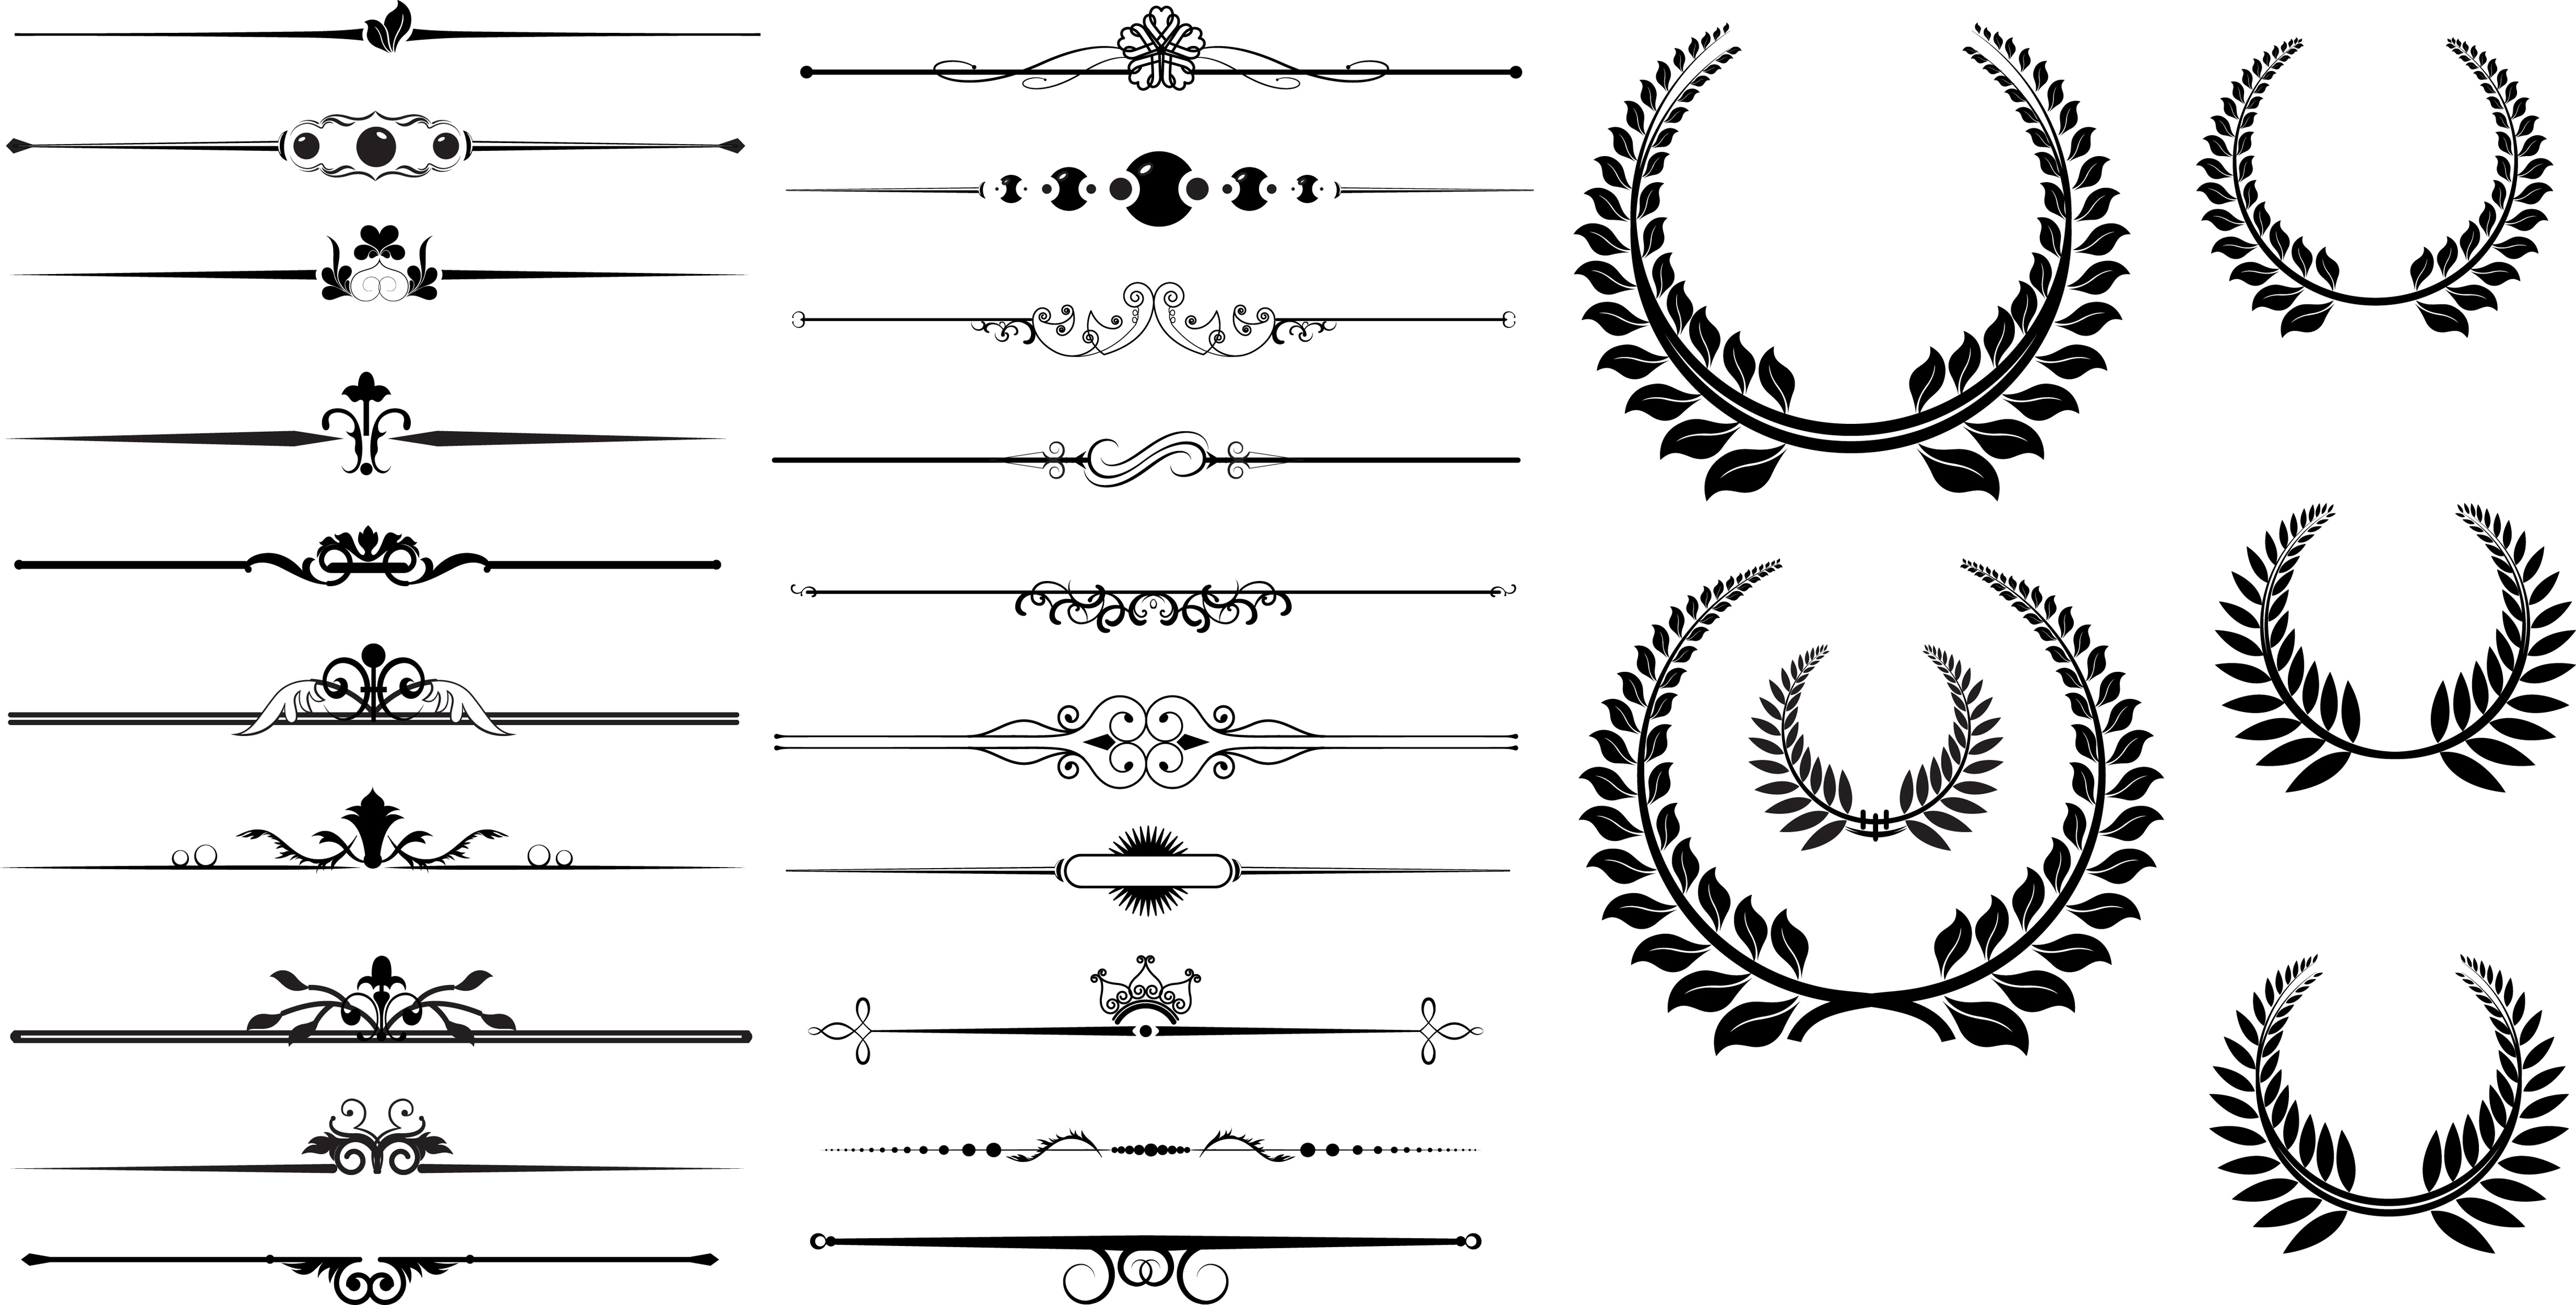 11 Free Vector Decorative Divider Clip Art Images - Free ...